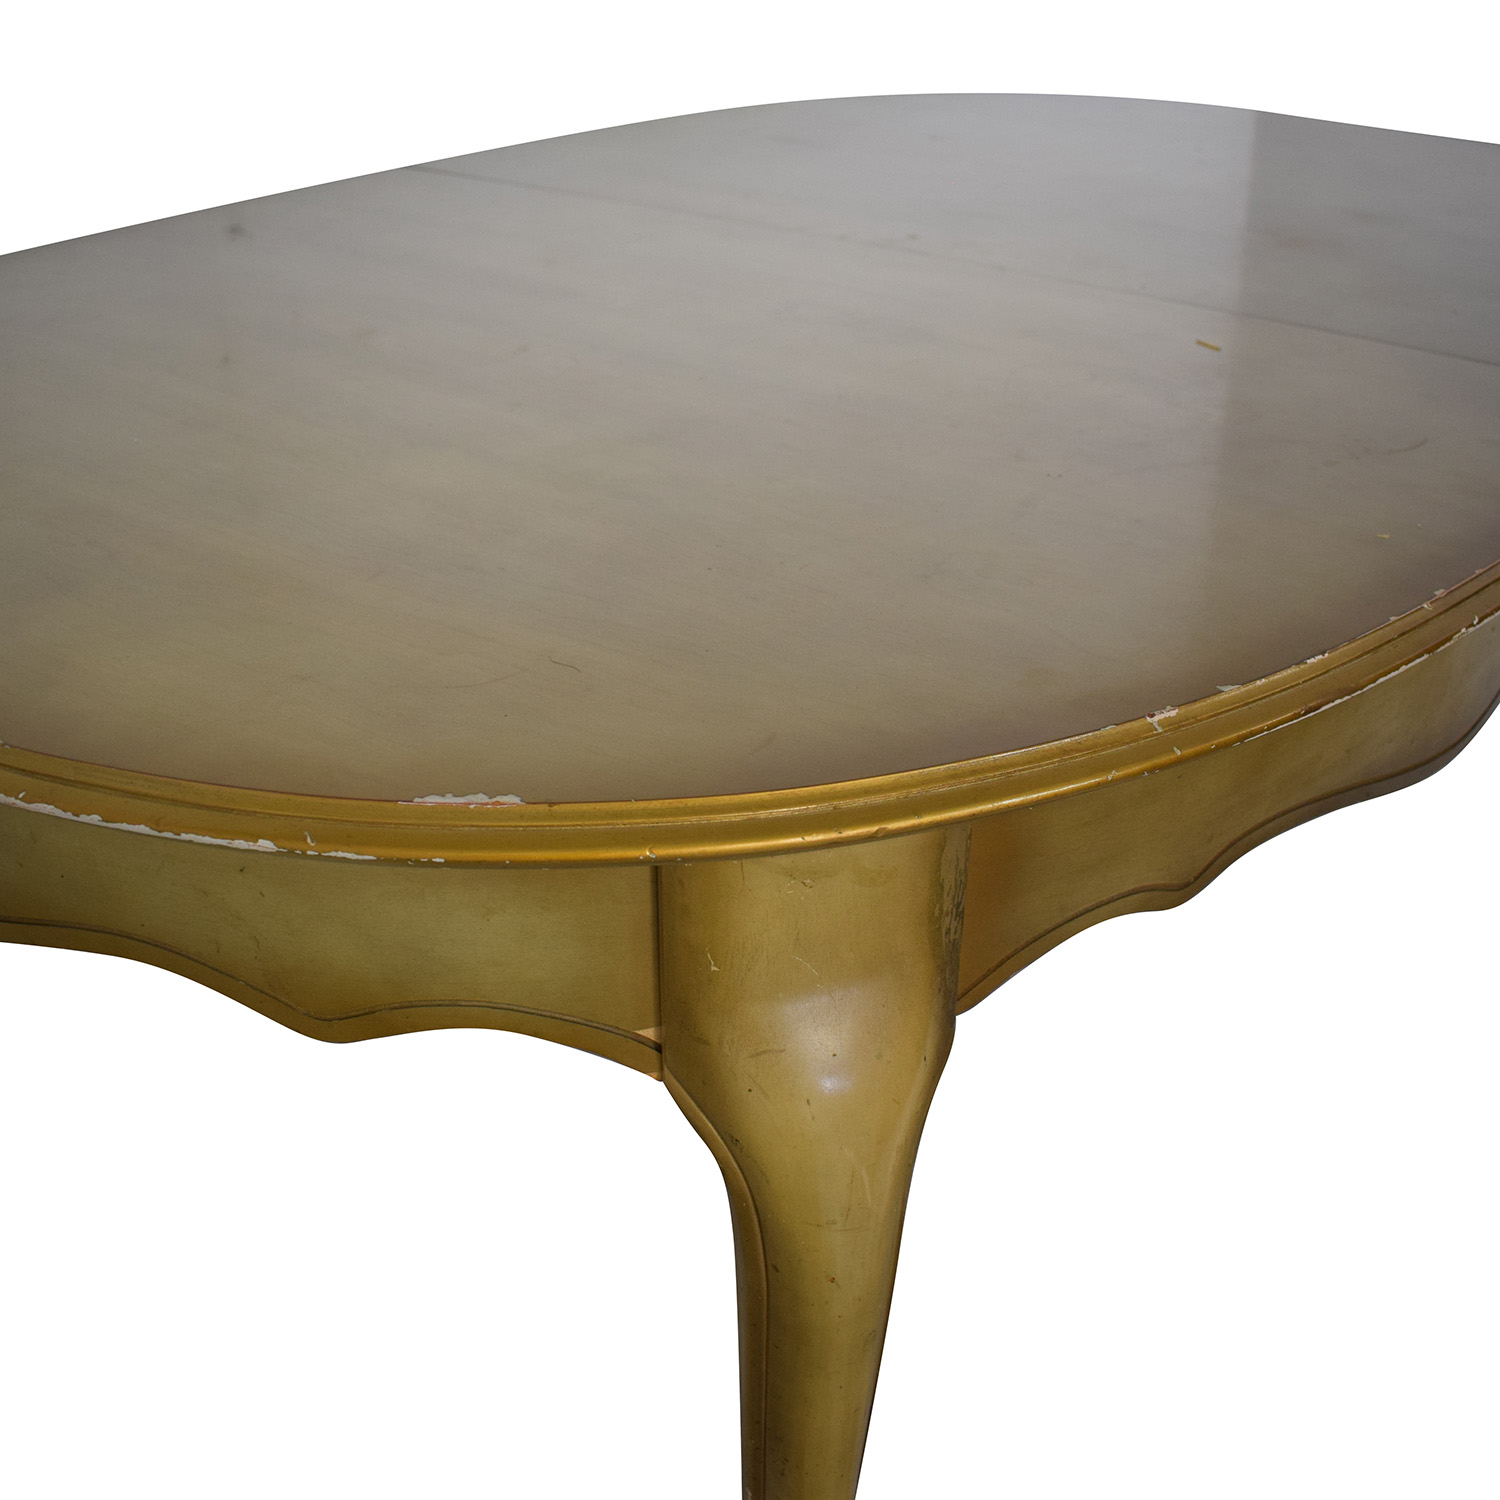 Oval Dining Table with Center Leaf beige